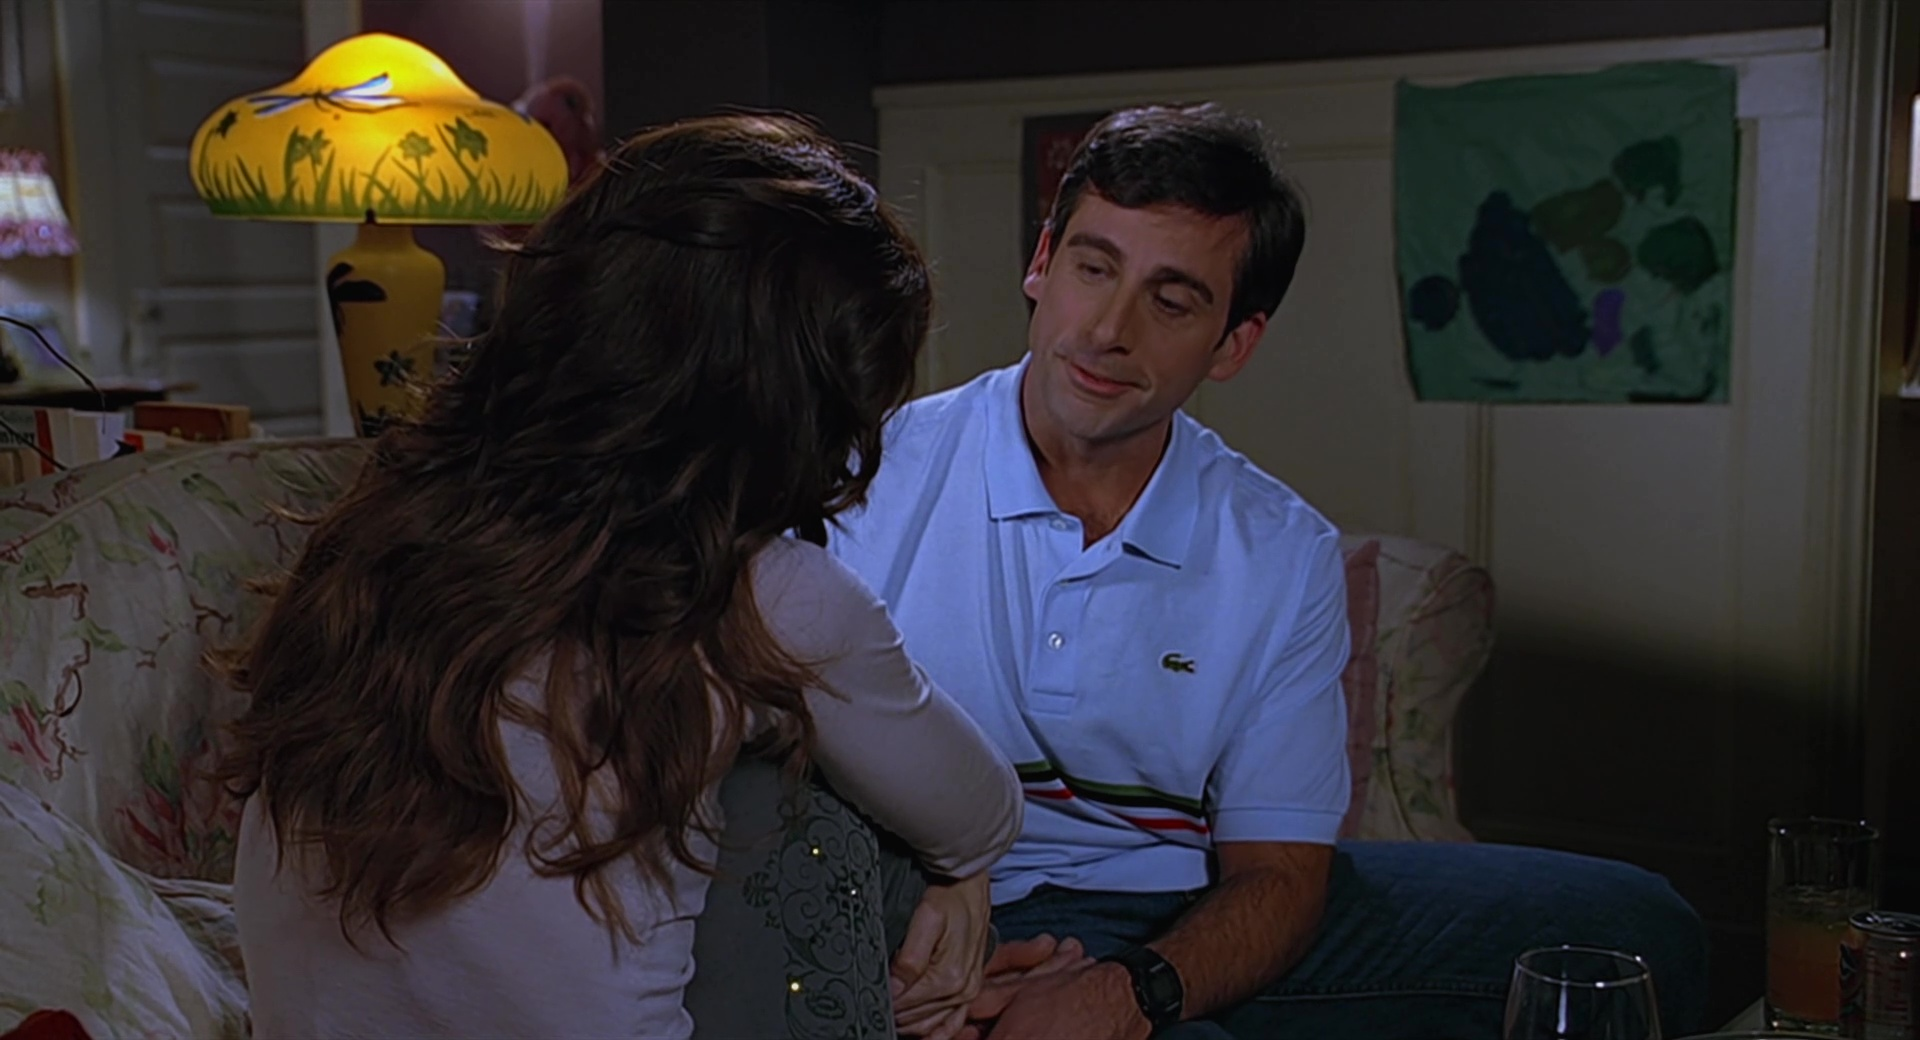 Lacoste Polo Shirt Worn By Steve Carell In The 40 Year Old Virgin 2005